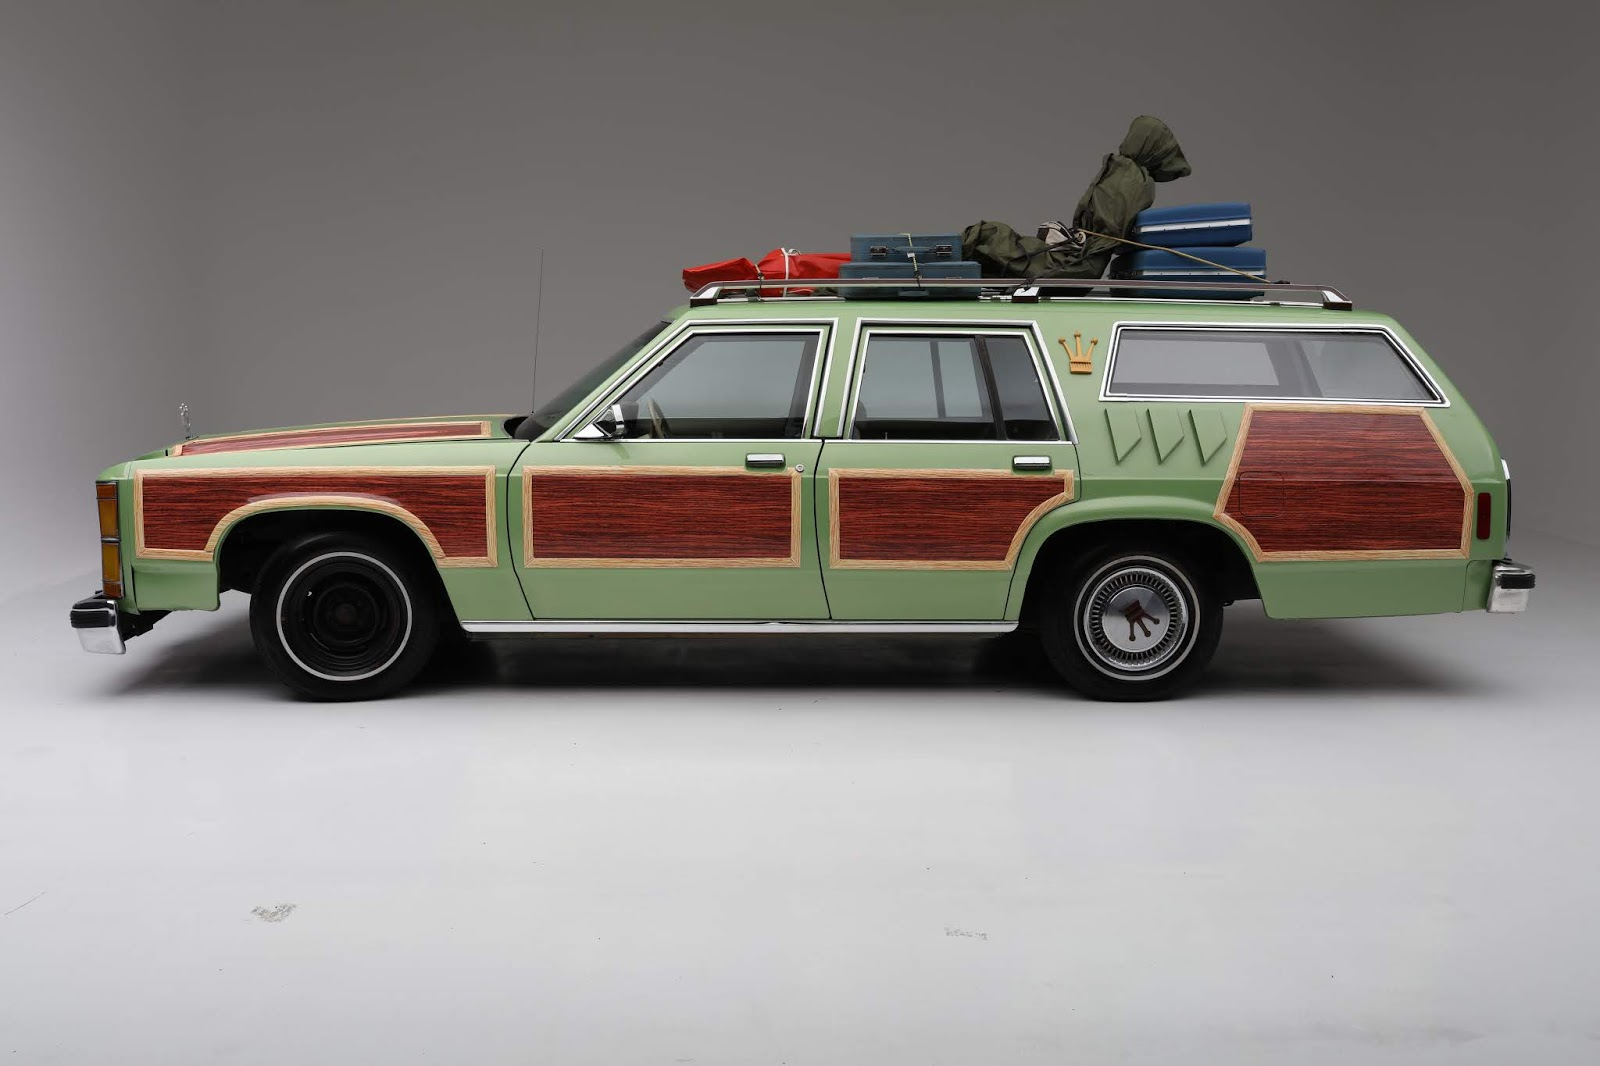 1981 FORD LTD CUSTOM STATION WAGON